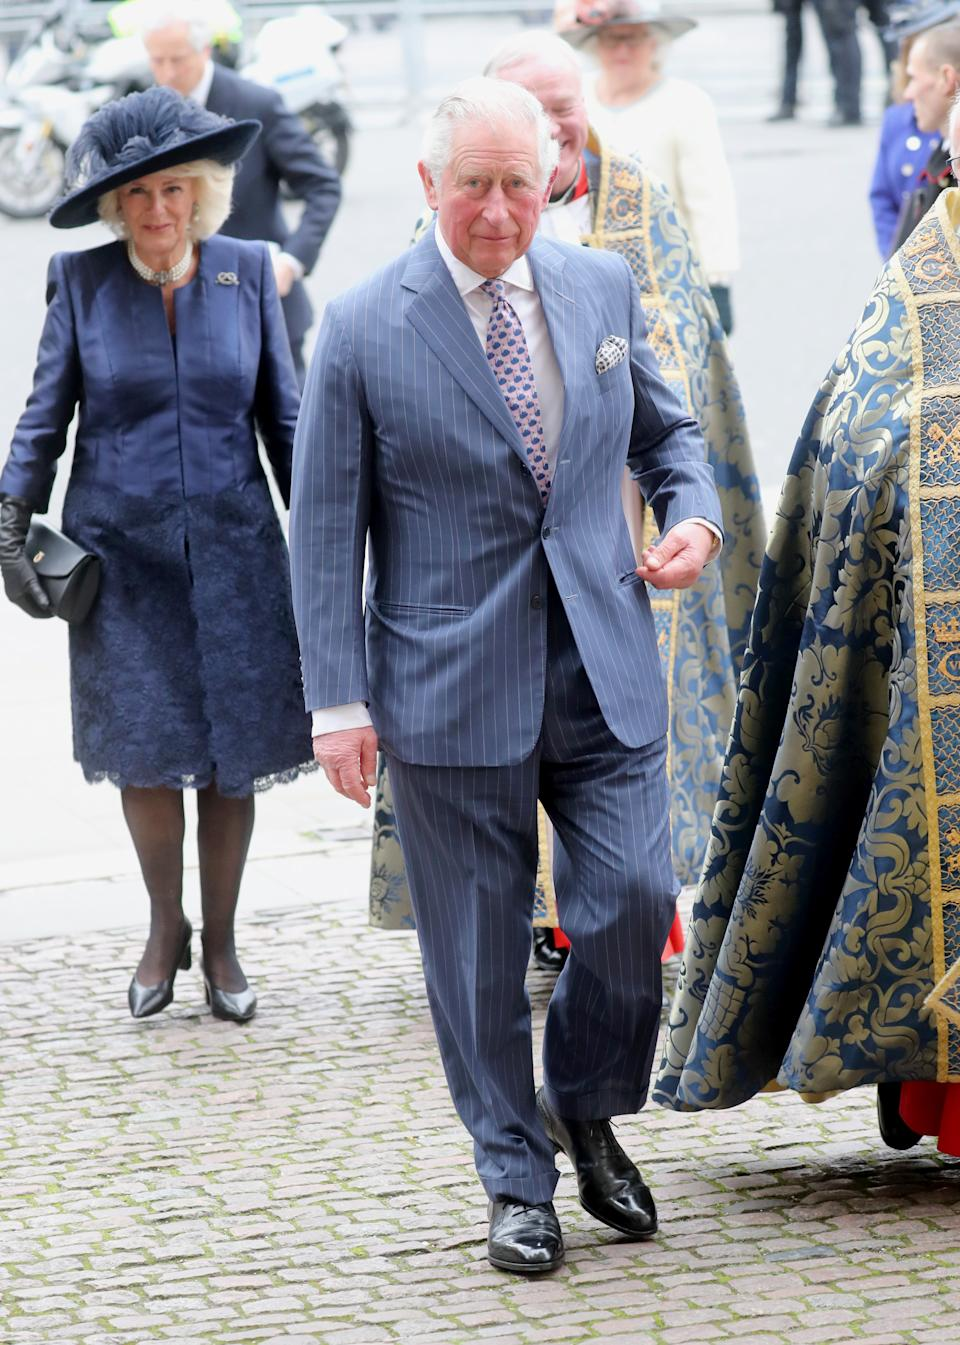 LONDON, ENGLAND - MARCH 09: Prince Charles, Prince of Wales attends the Commonwealth Day Service 2020 at Westminster Abbey on March 09, 2020 in London, England. The Commonwealth represents 2.4 billion people and 54 countries, working in collaboration towards shared economic, environmental, social and democratic goals. (Photo by Chris Jackson/Getty Images)